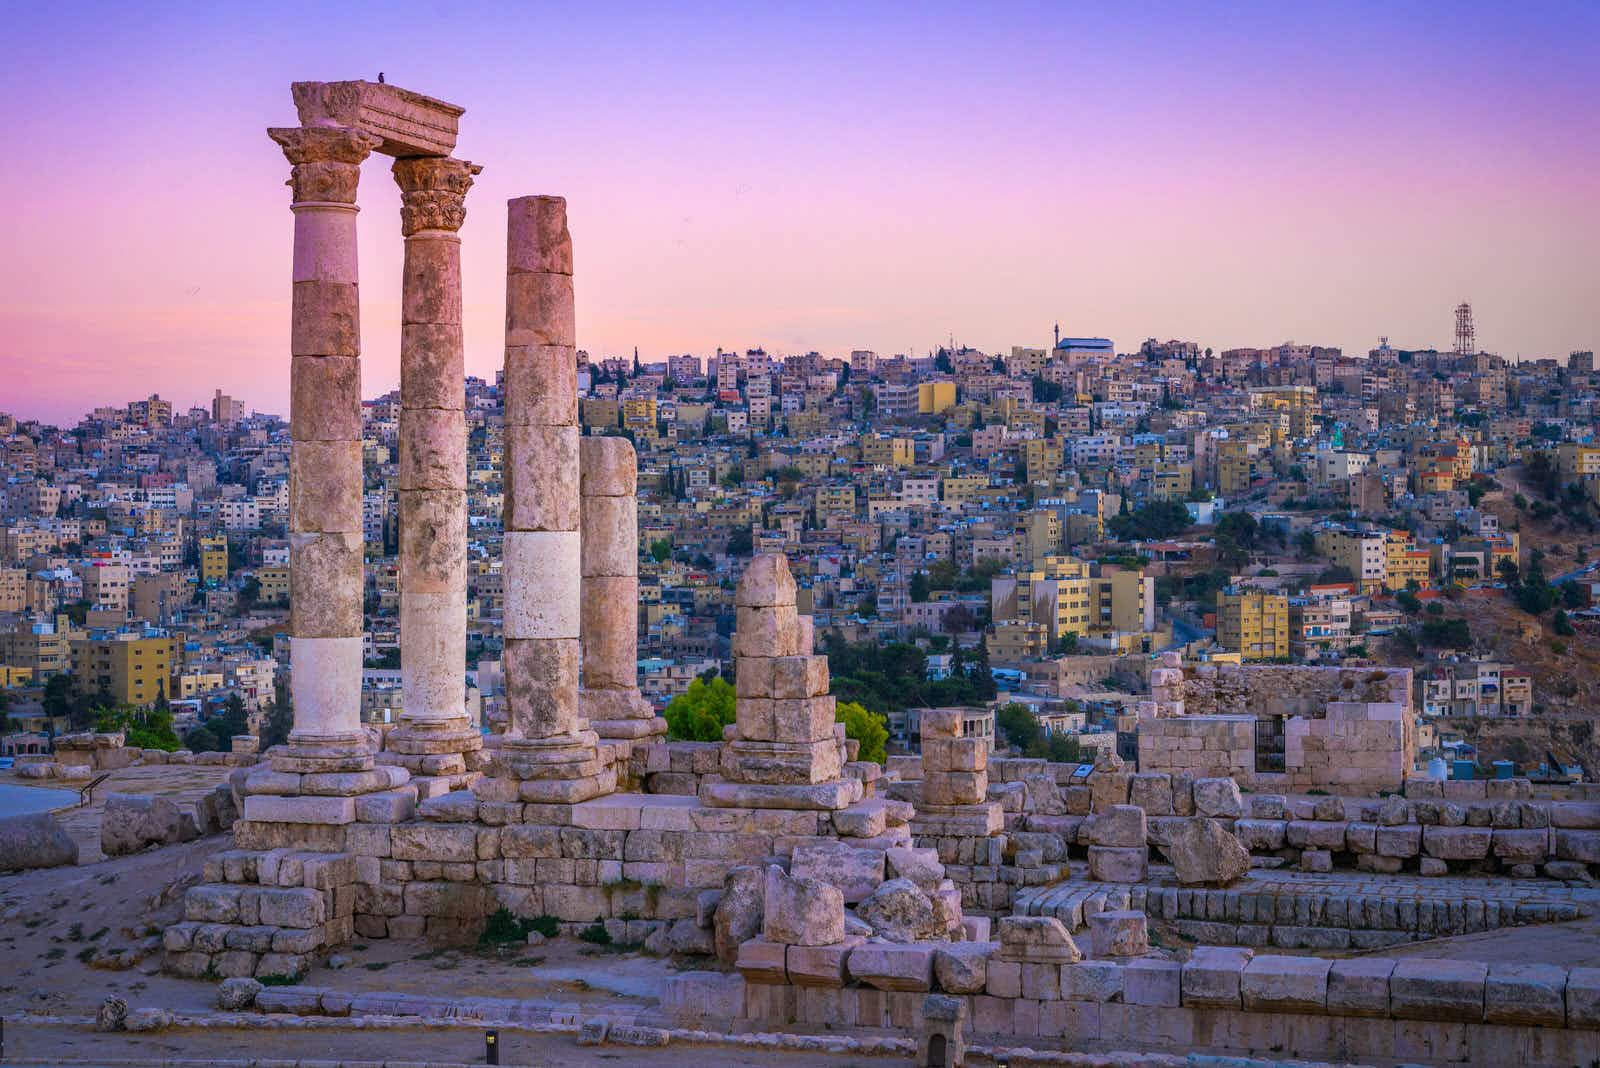 Roman ruins in the middle of the Citadel in the center Amman ©mbrand85 / Shutterstock